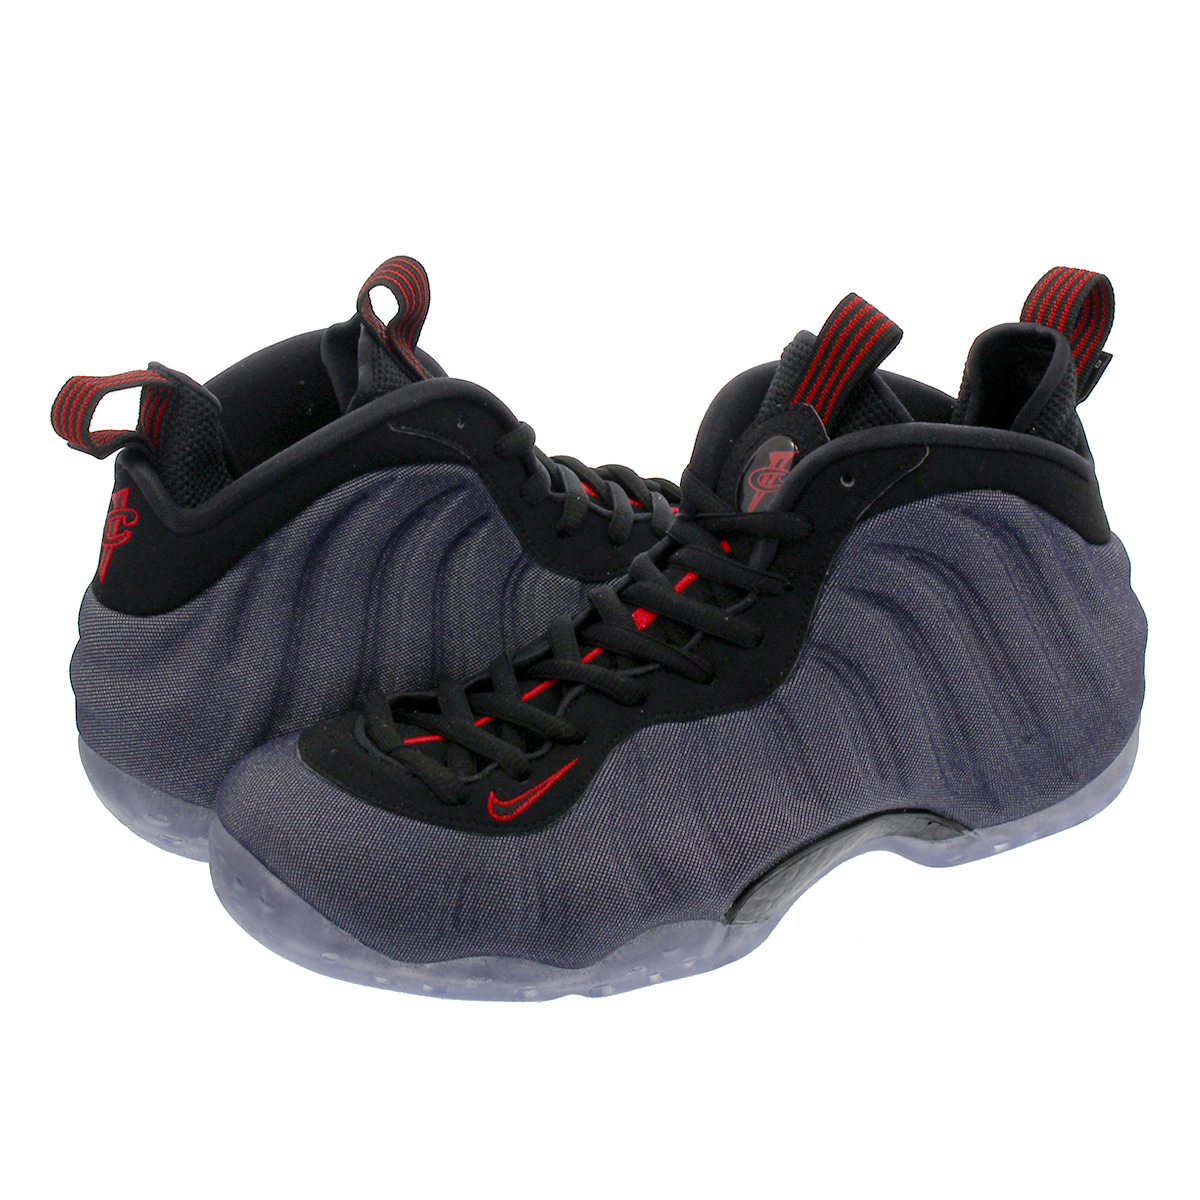 257c69ec5e23ea SELECT SHOP LOWTEX  NIKE AIR FOAMPOSITE ONE ナイキエアフォームポジットワン OBSIDIAN BLACK UNIVERSITY  RED 314